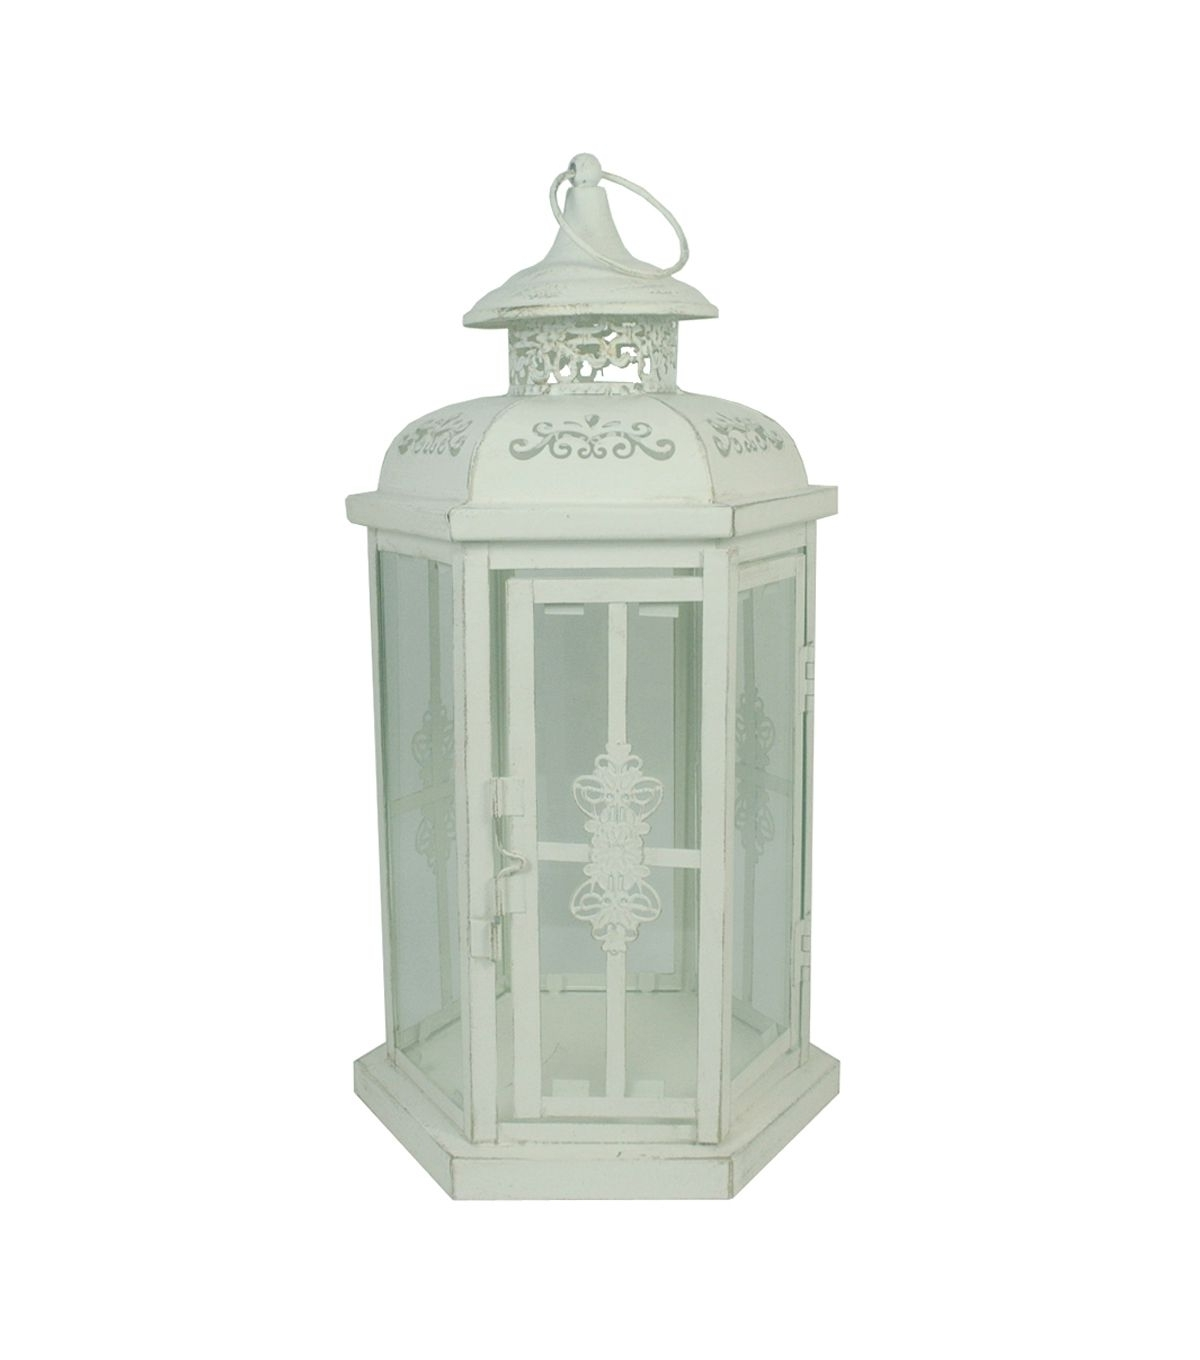 Hudson 43™ Candle & Light Collection Distressed Metal Lantern White Intended For Best And Newest Joanns Outdoor Lanterns (Gallery 6 of 20)